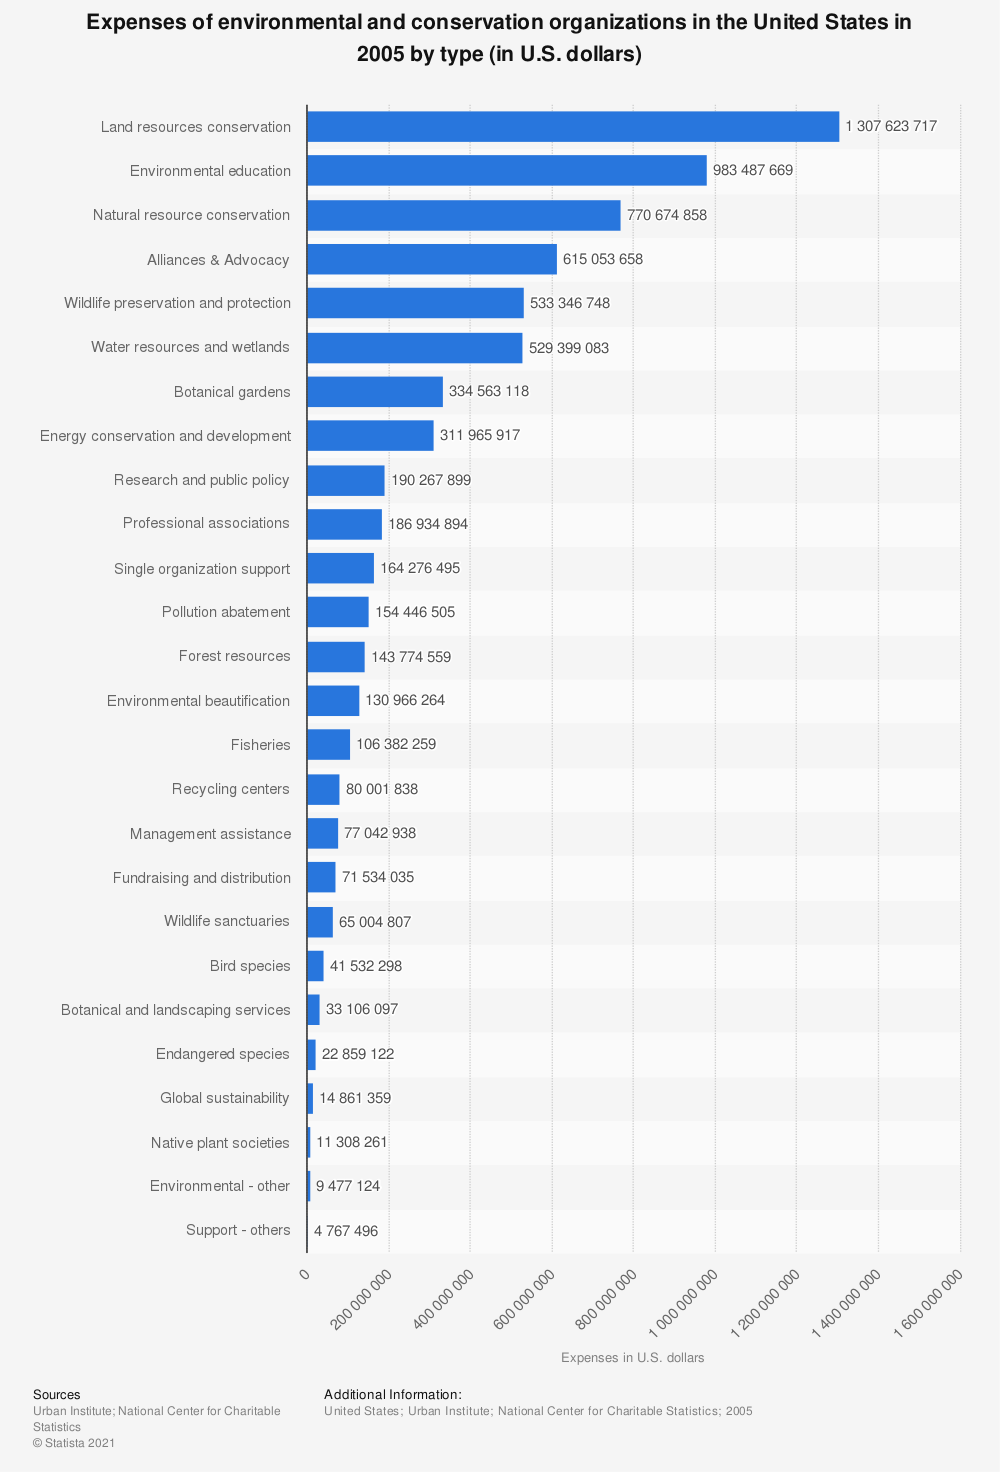 Statistic: Expenses of environmental and conservation organizations in the United States in 2005 by type (in U.S. dollars) | Statista